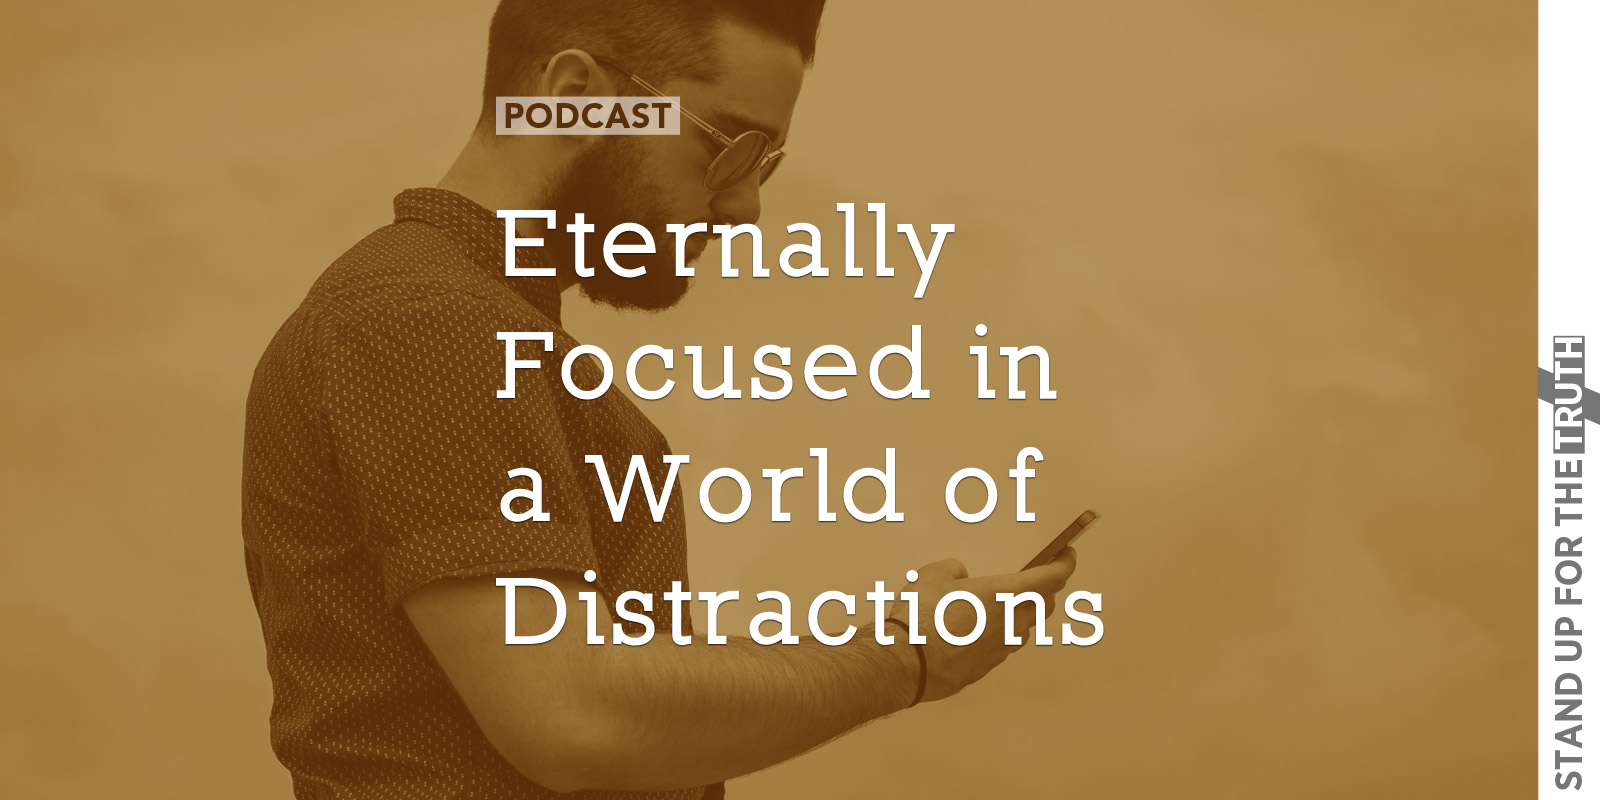 Eternally Focused in a World of Distractions